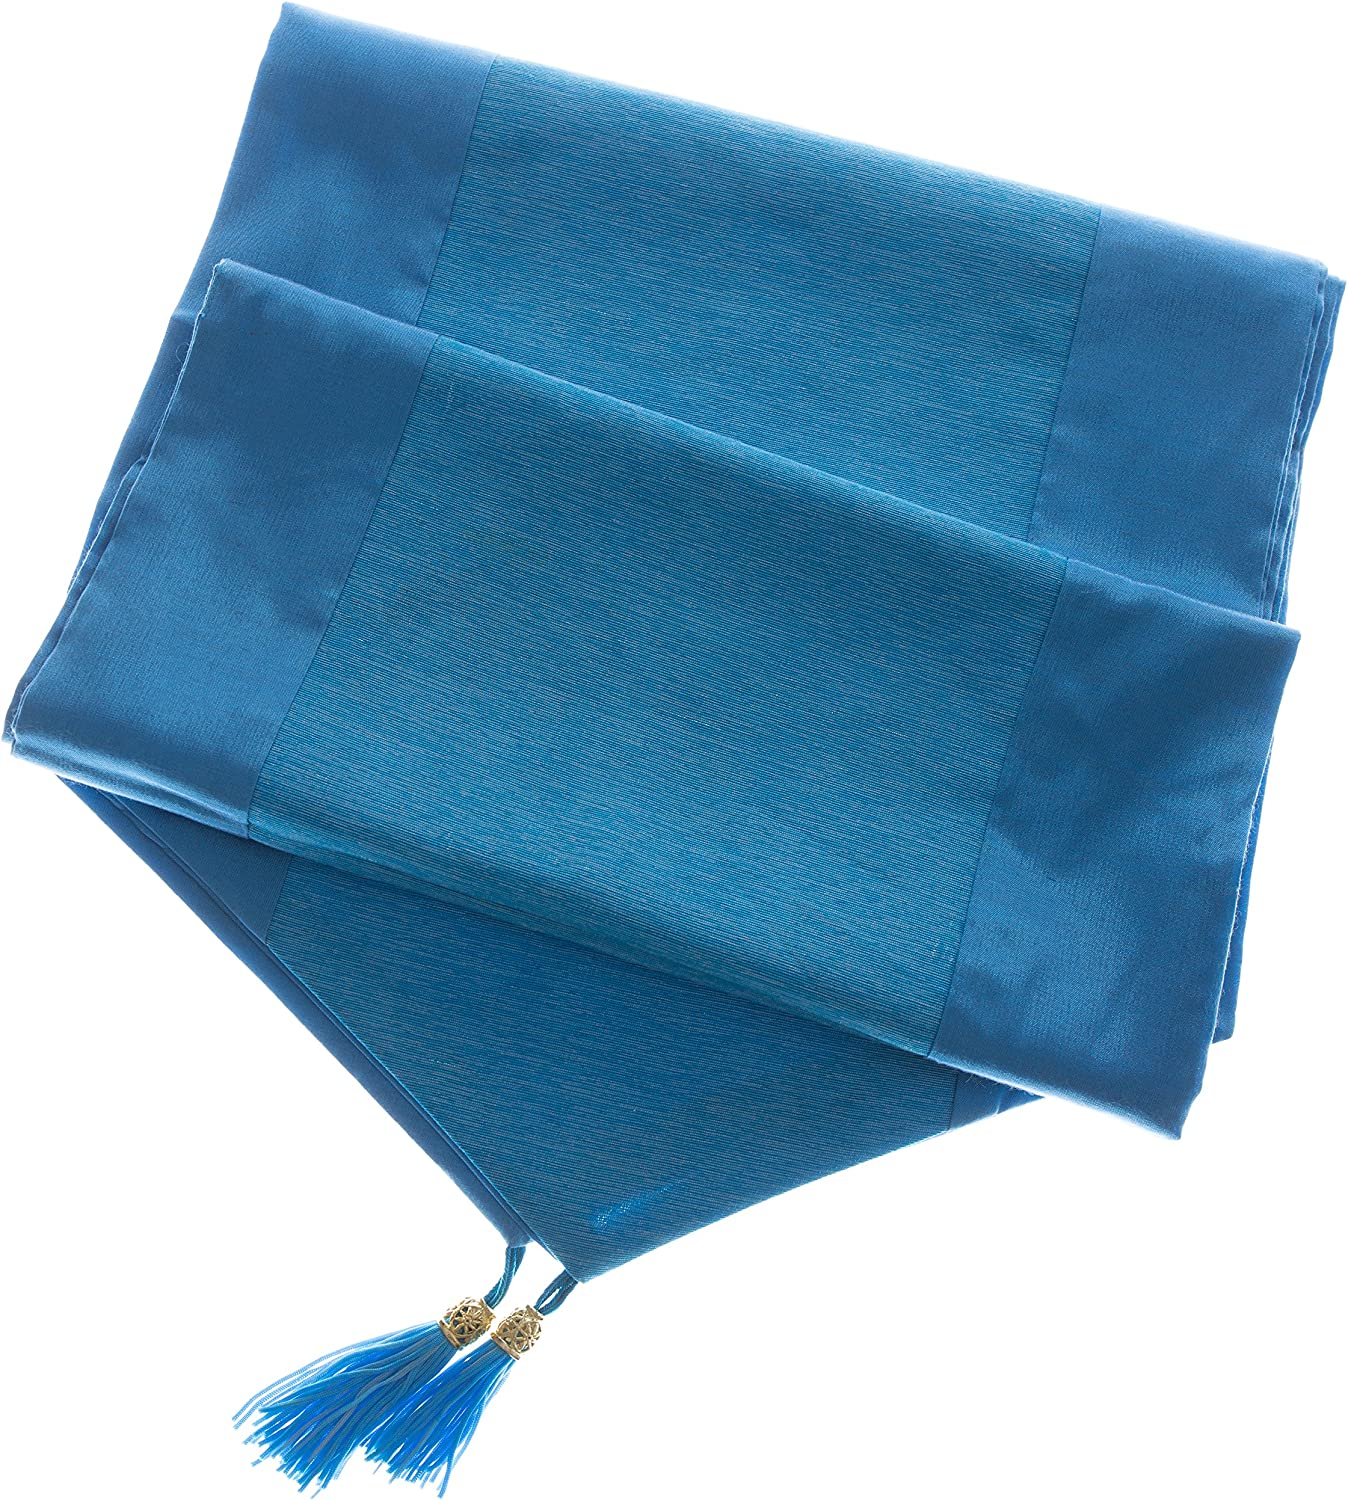 Avarada Elegant Surprise price Table Runners Light OFFicial site Cof for Blue Home Decorative